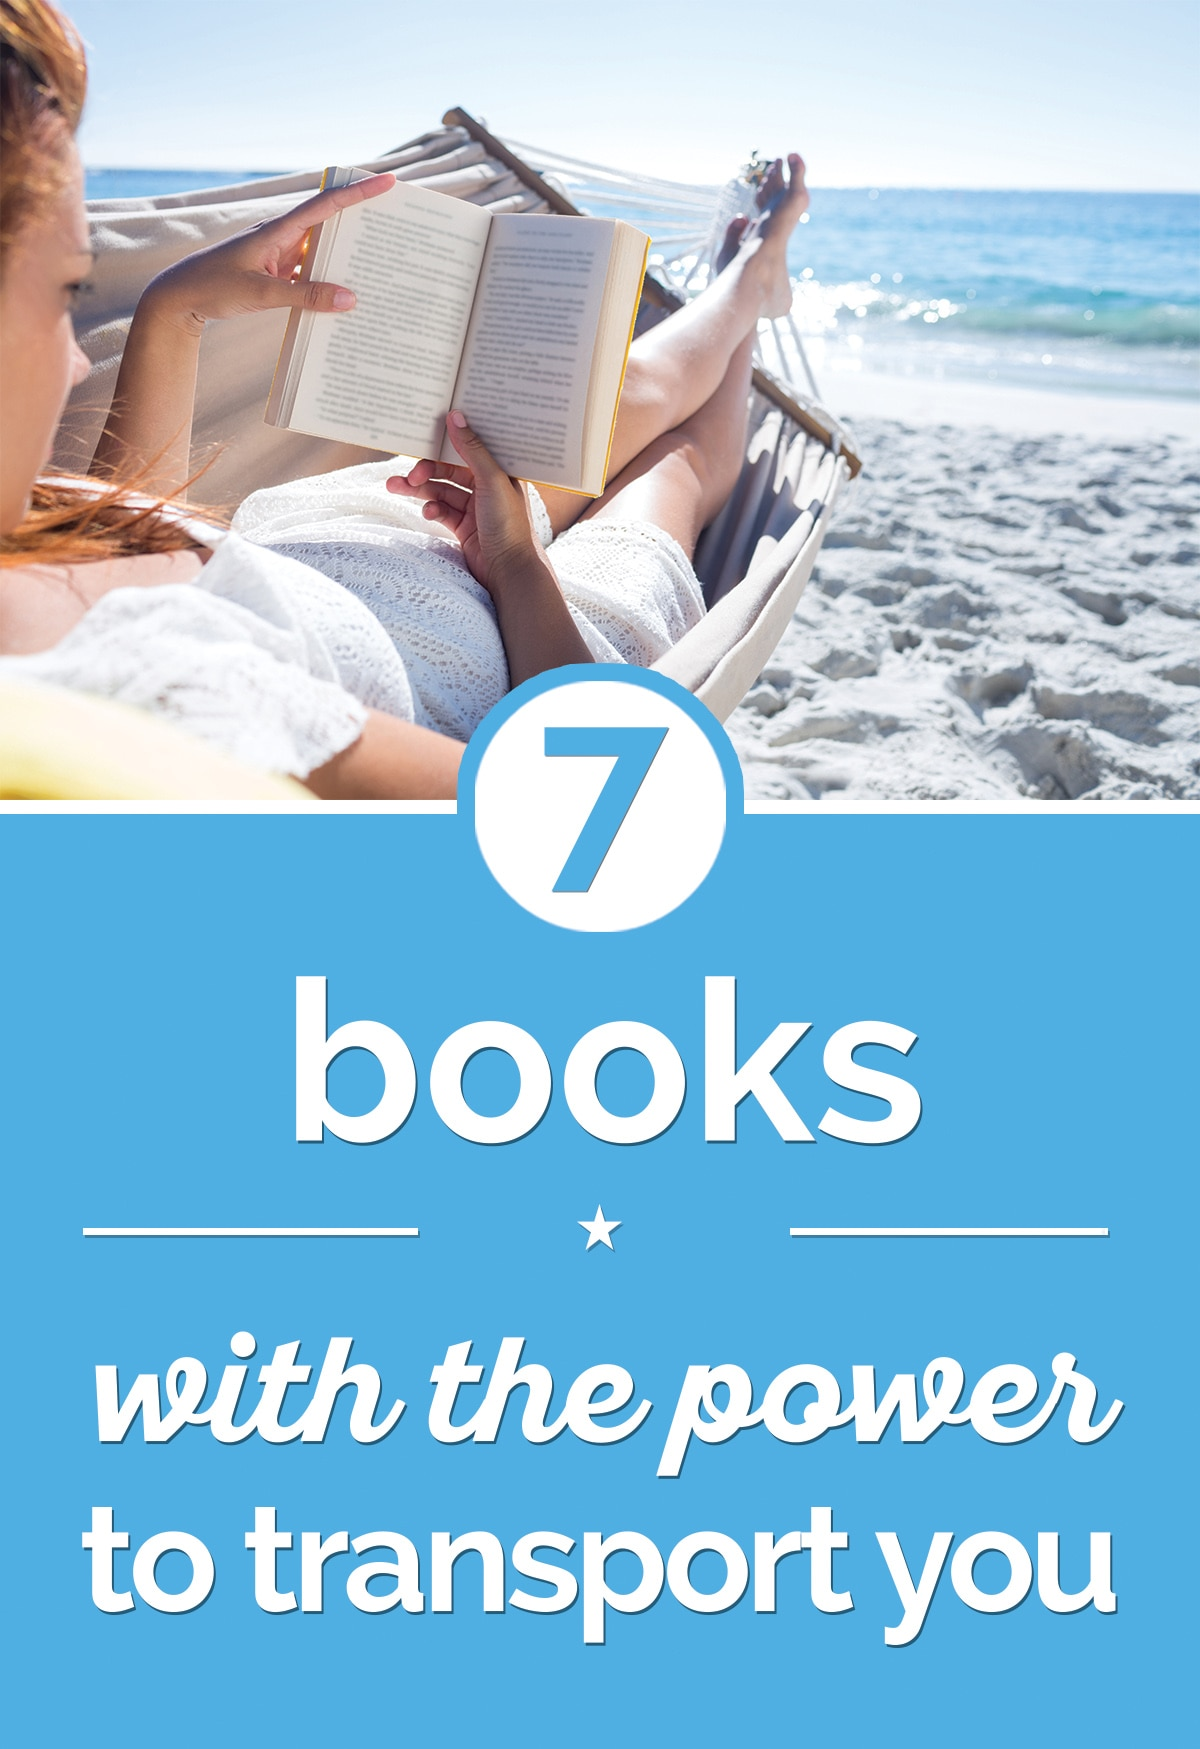 Book Recommendations: 7 Books with the Power to Transport You   thegoodstuff